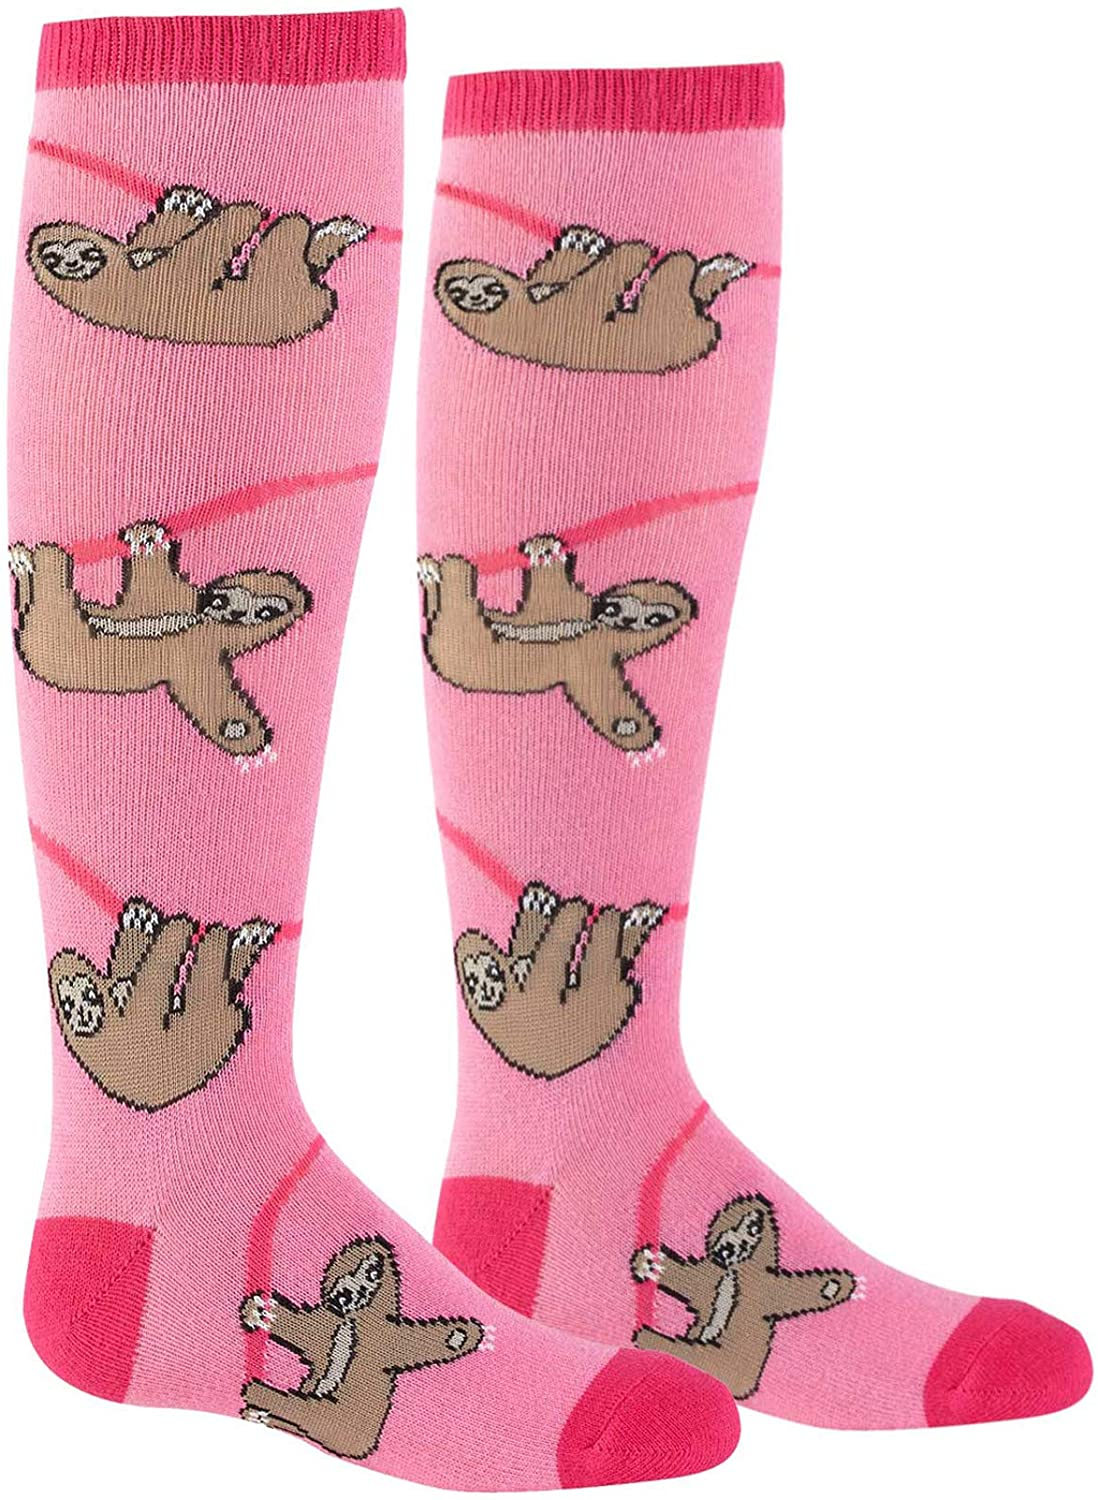 Sock It To Me Youth Pink Sloth Knee High Socks